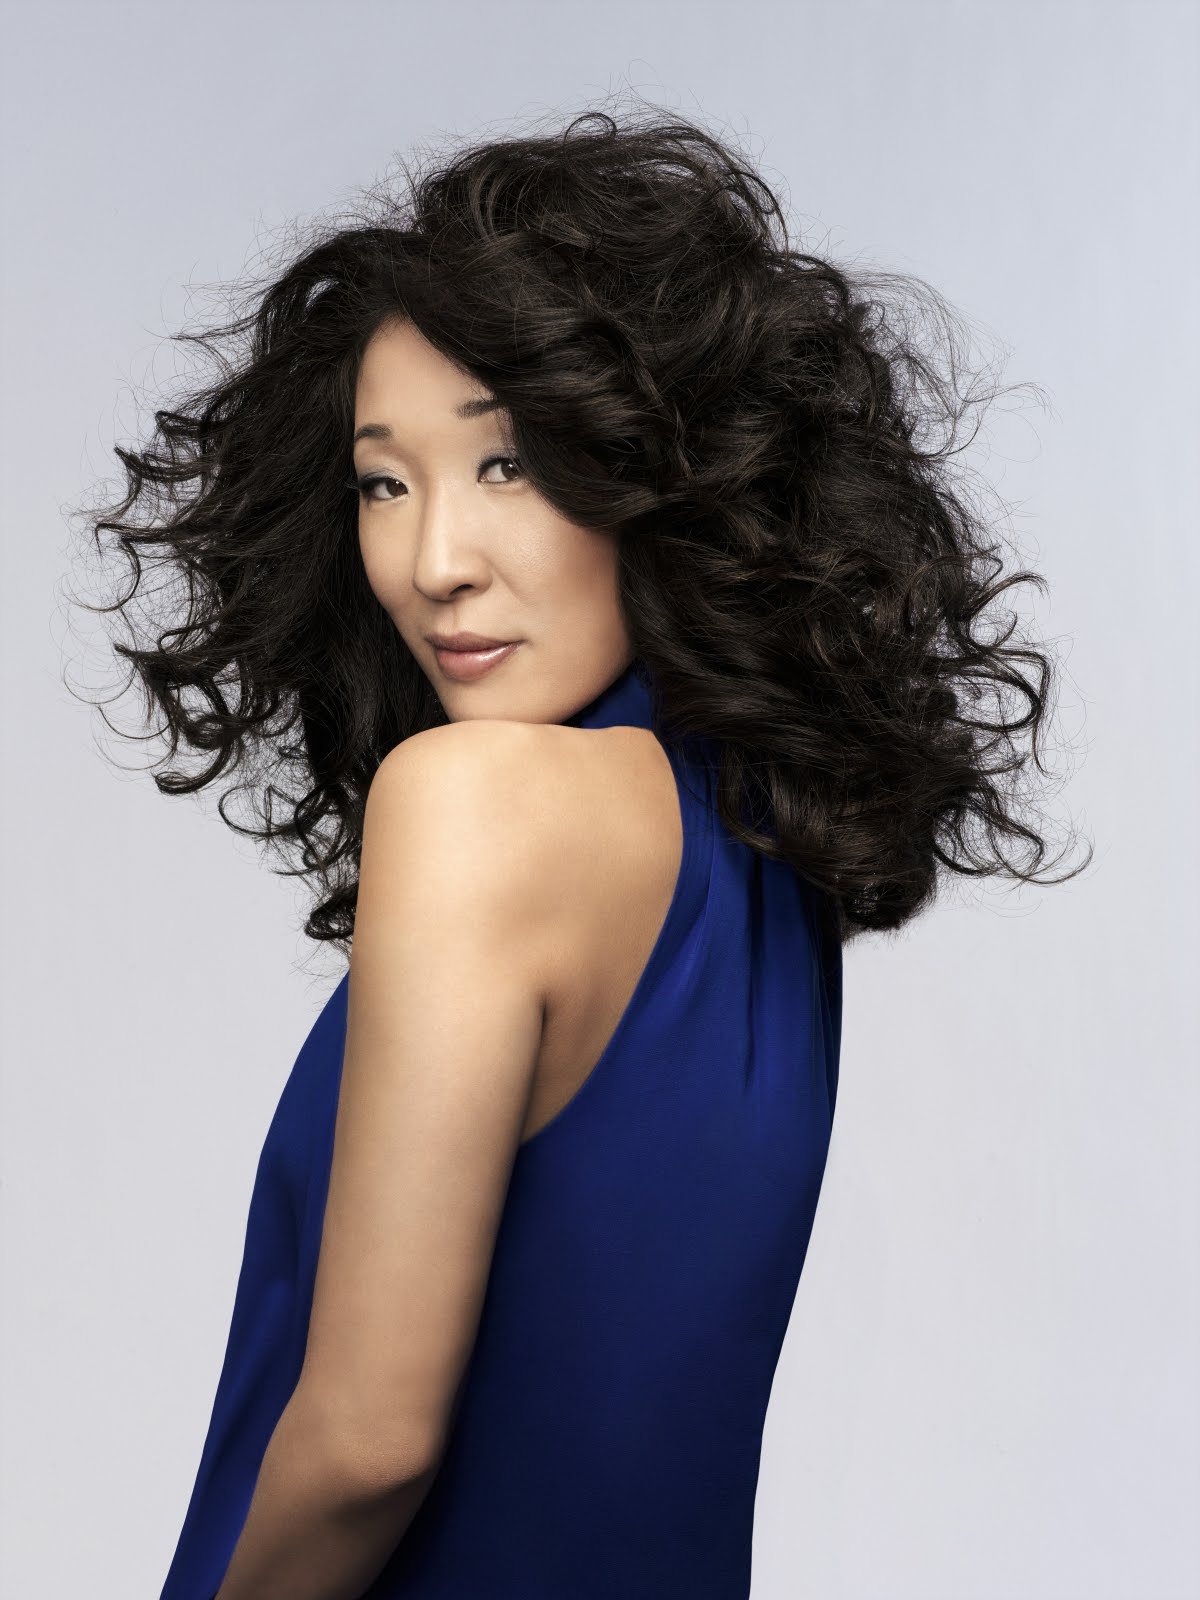 Sandra S Closet: Pictures Of Actresses: Sandra Oh